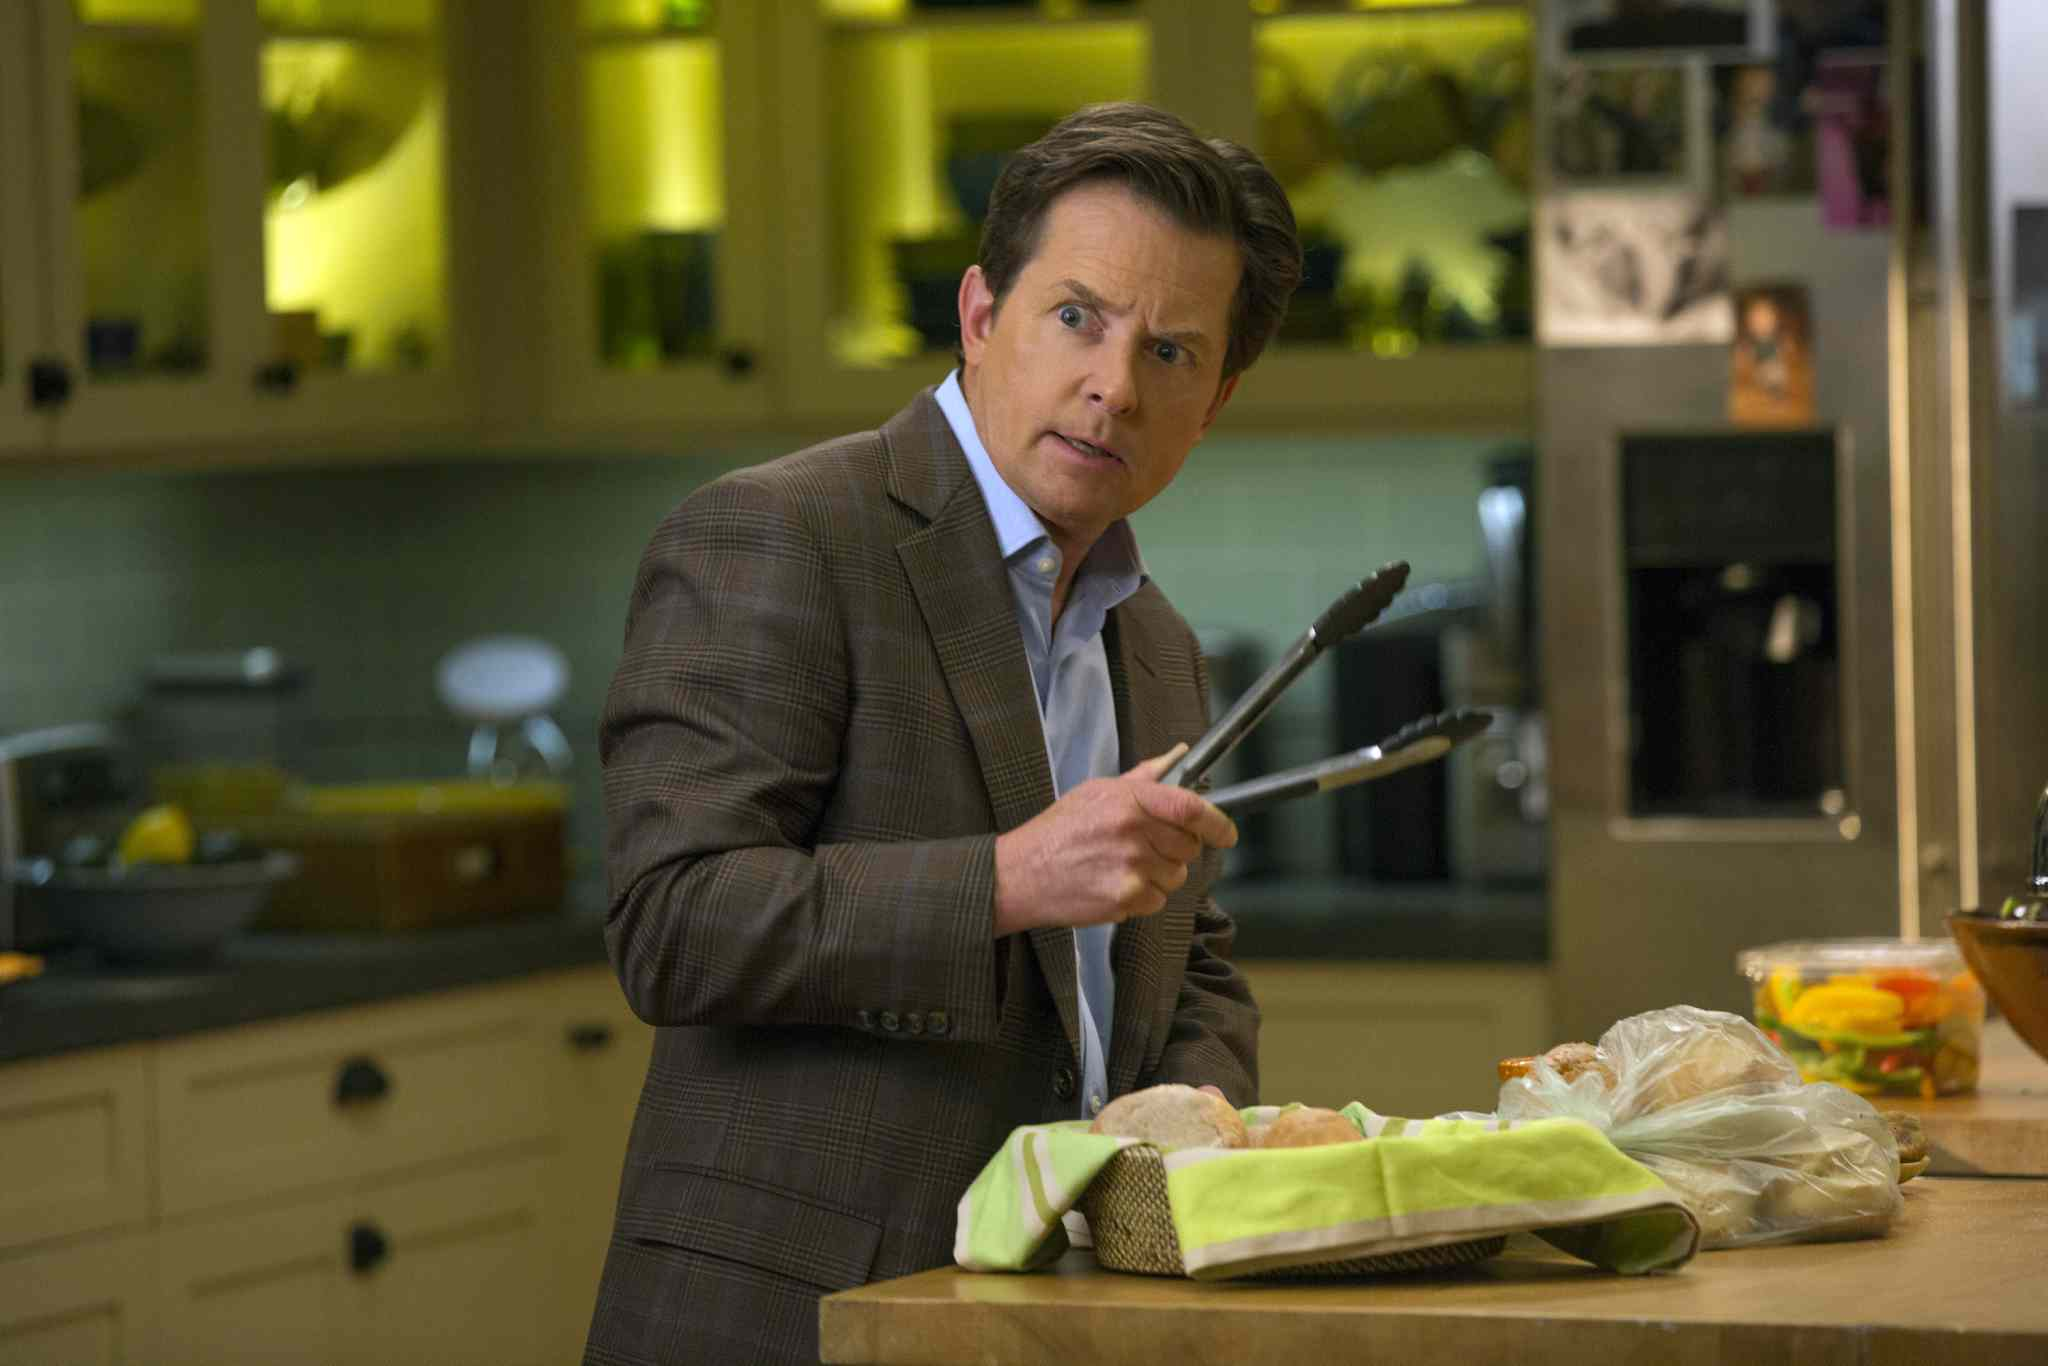 The future is now: Michael J. Fox returns in his own series as a news anchor with Parkinson's disease.